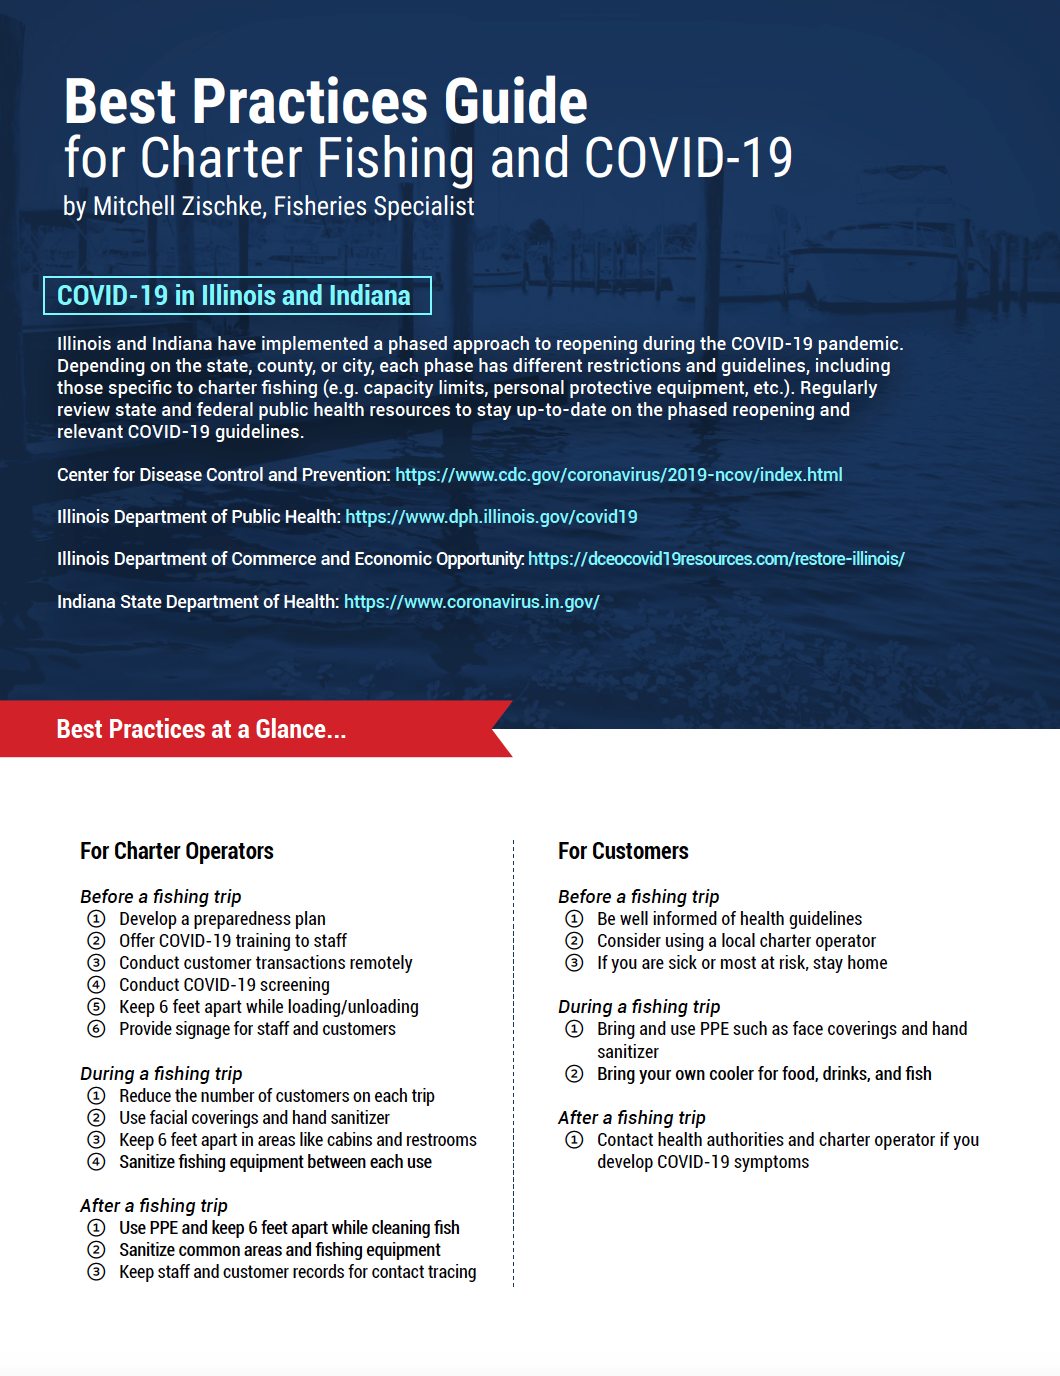 Best Practices Guide for Charter Fishing and COVID-19